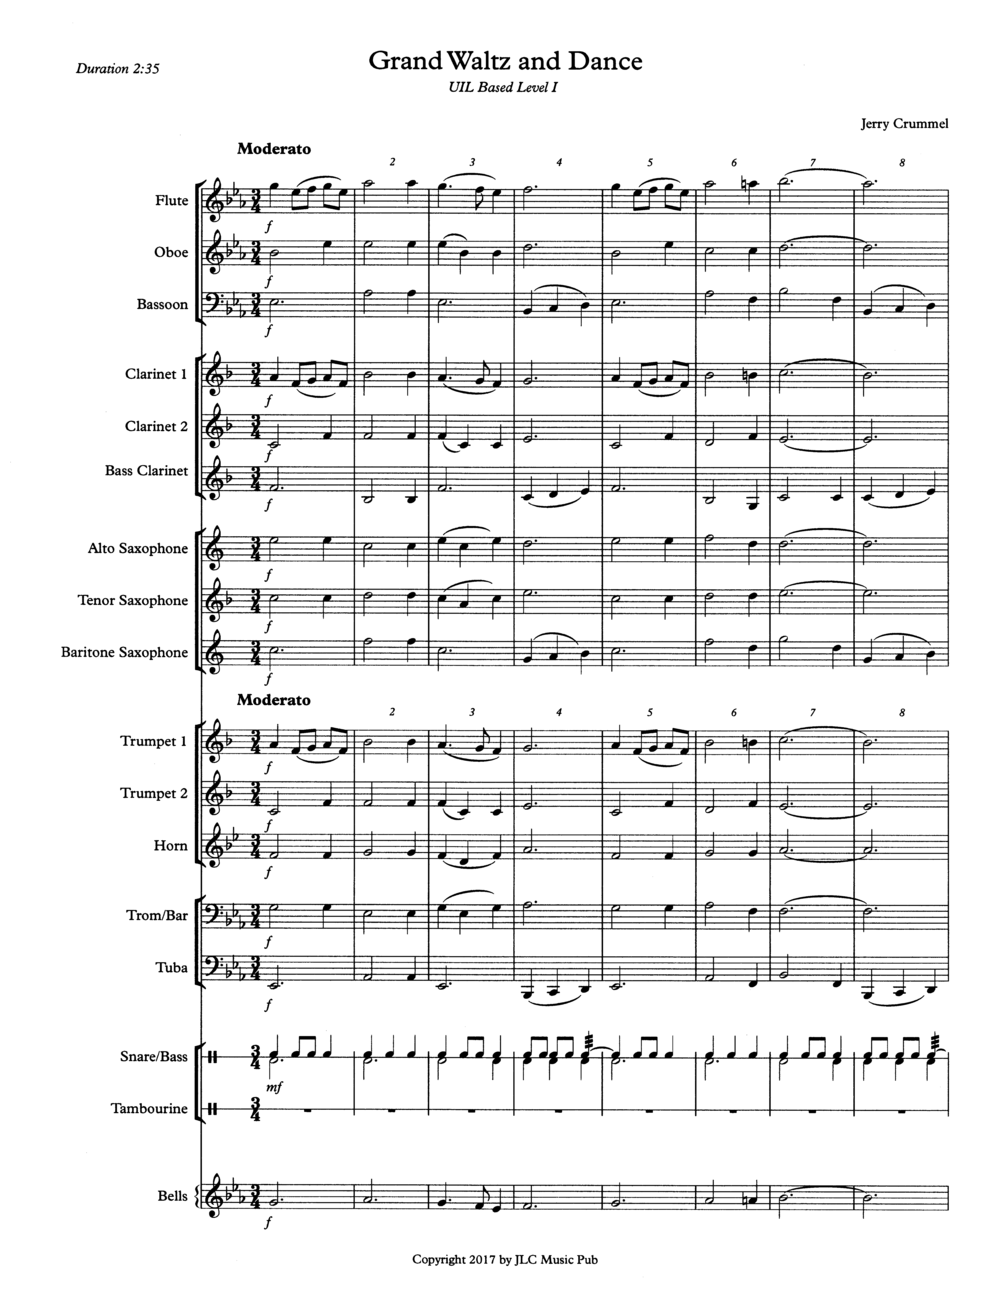 Grand Waltz and Dance SCORE p.108262017.png